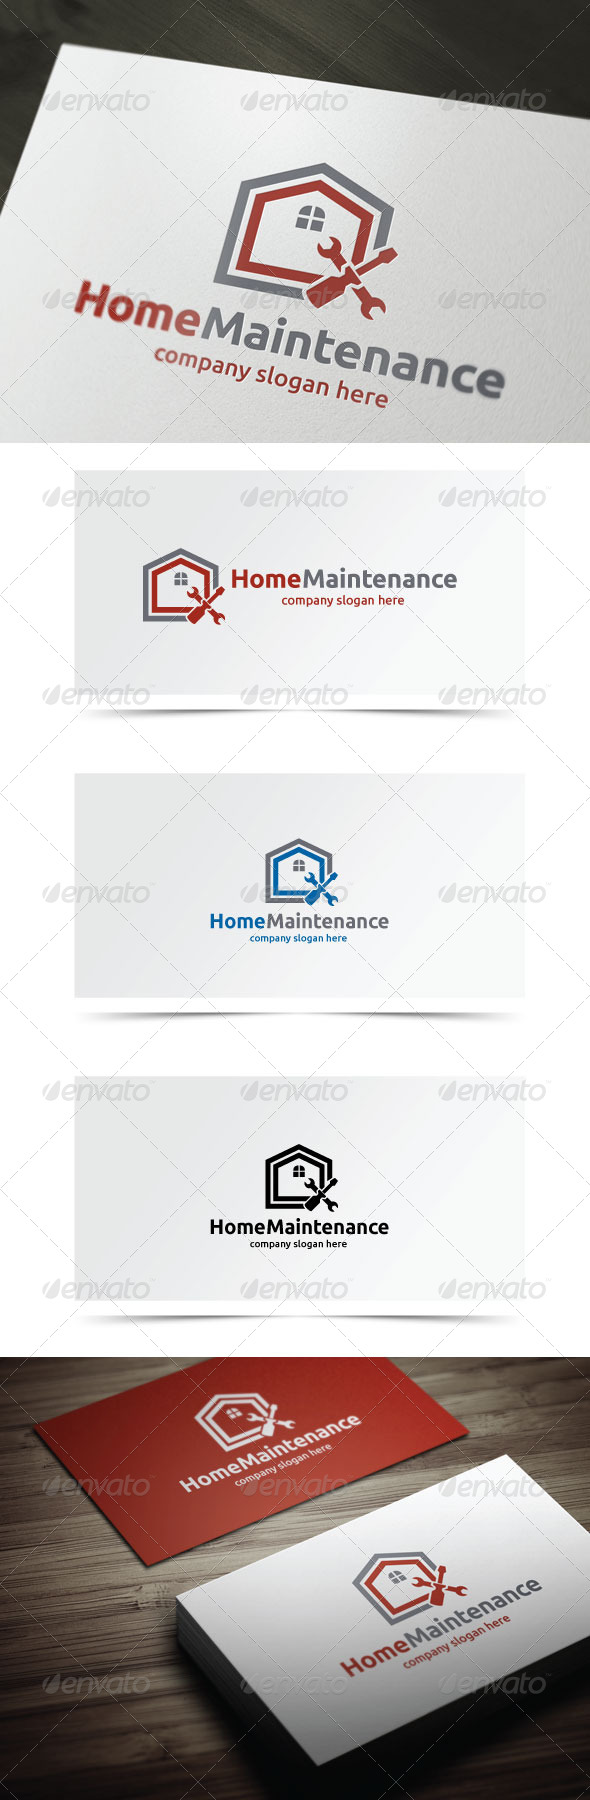 Home Maintenance  - Objects Logo Templates